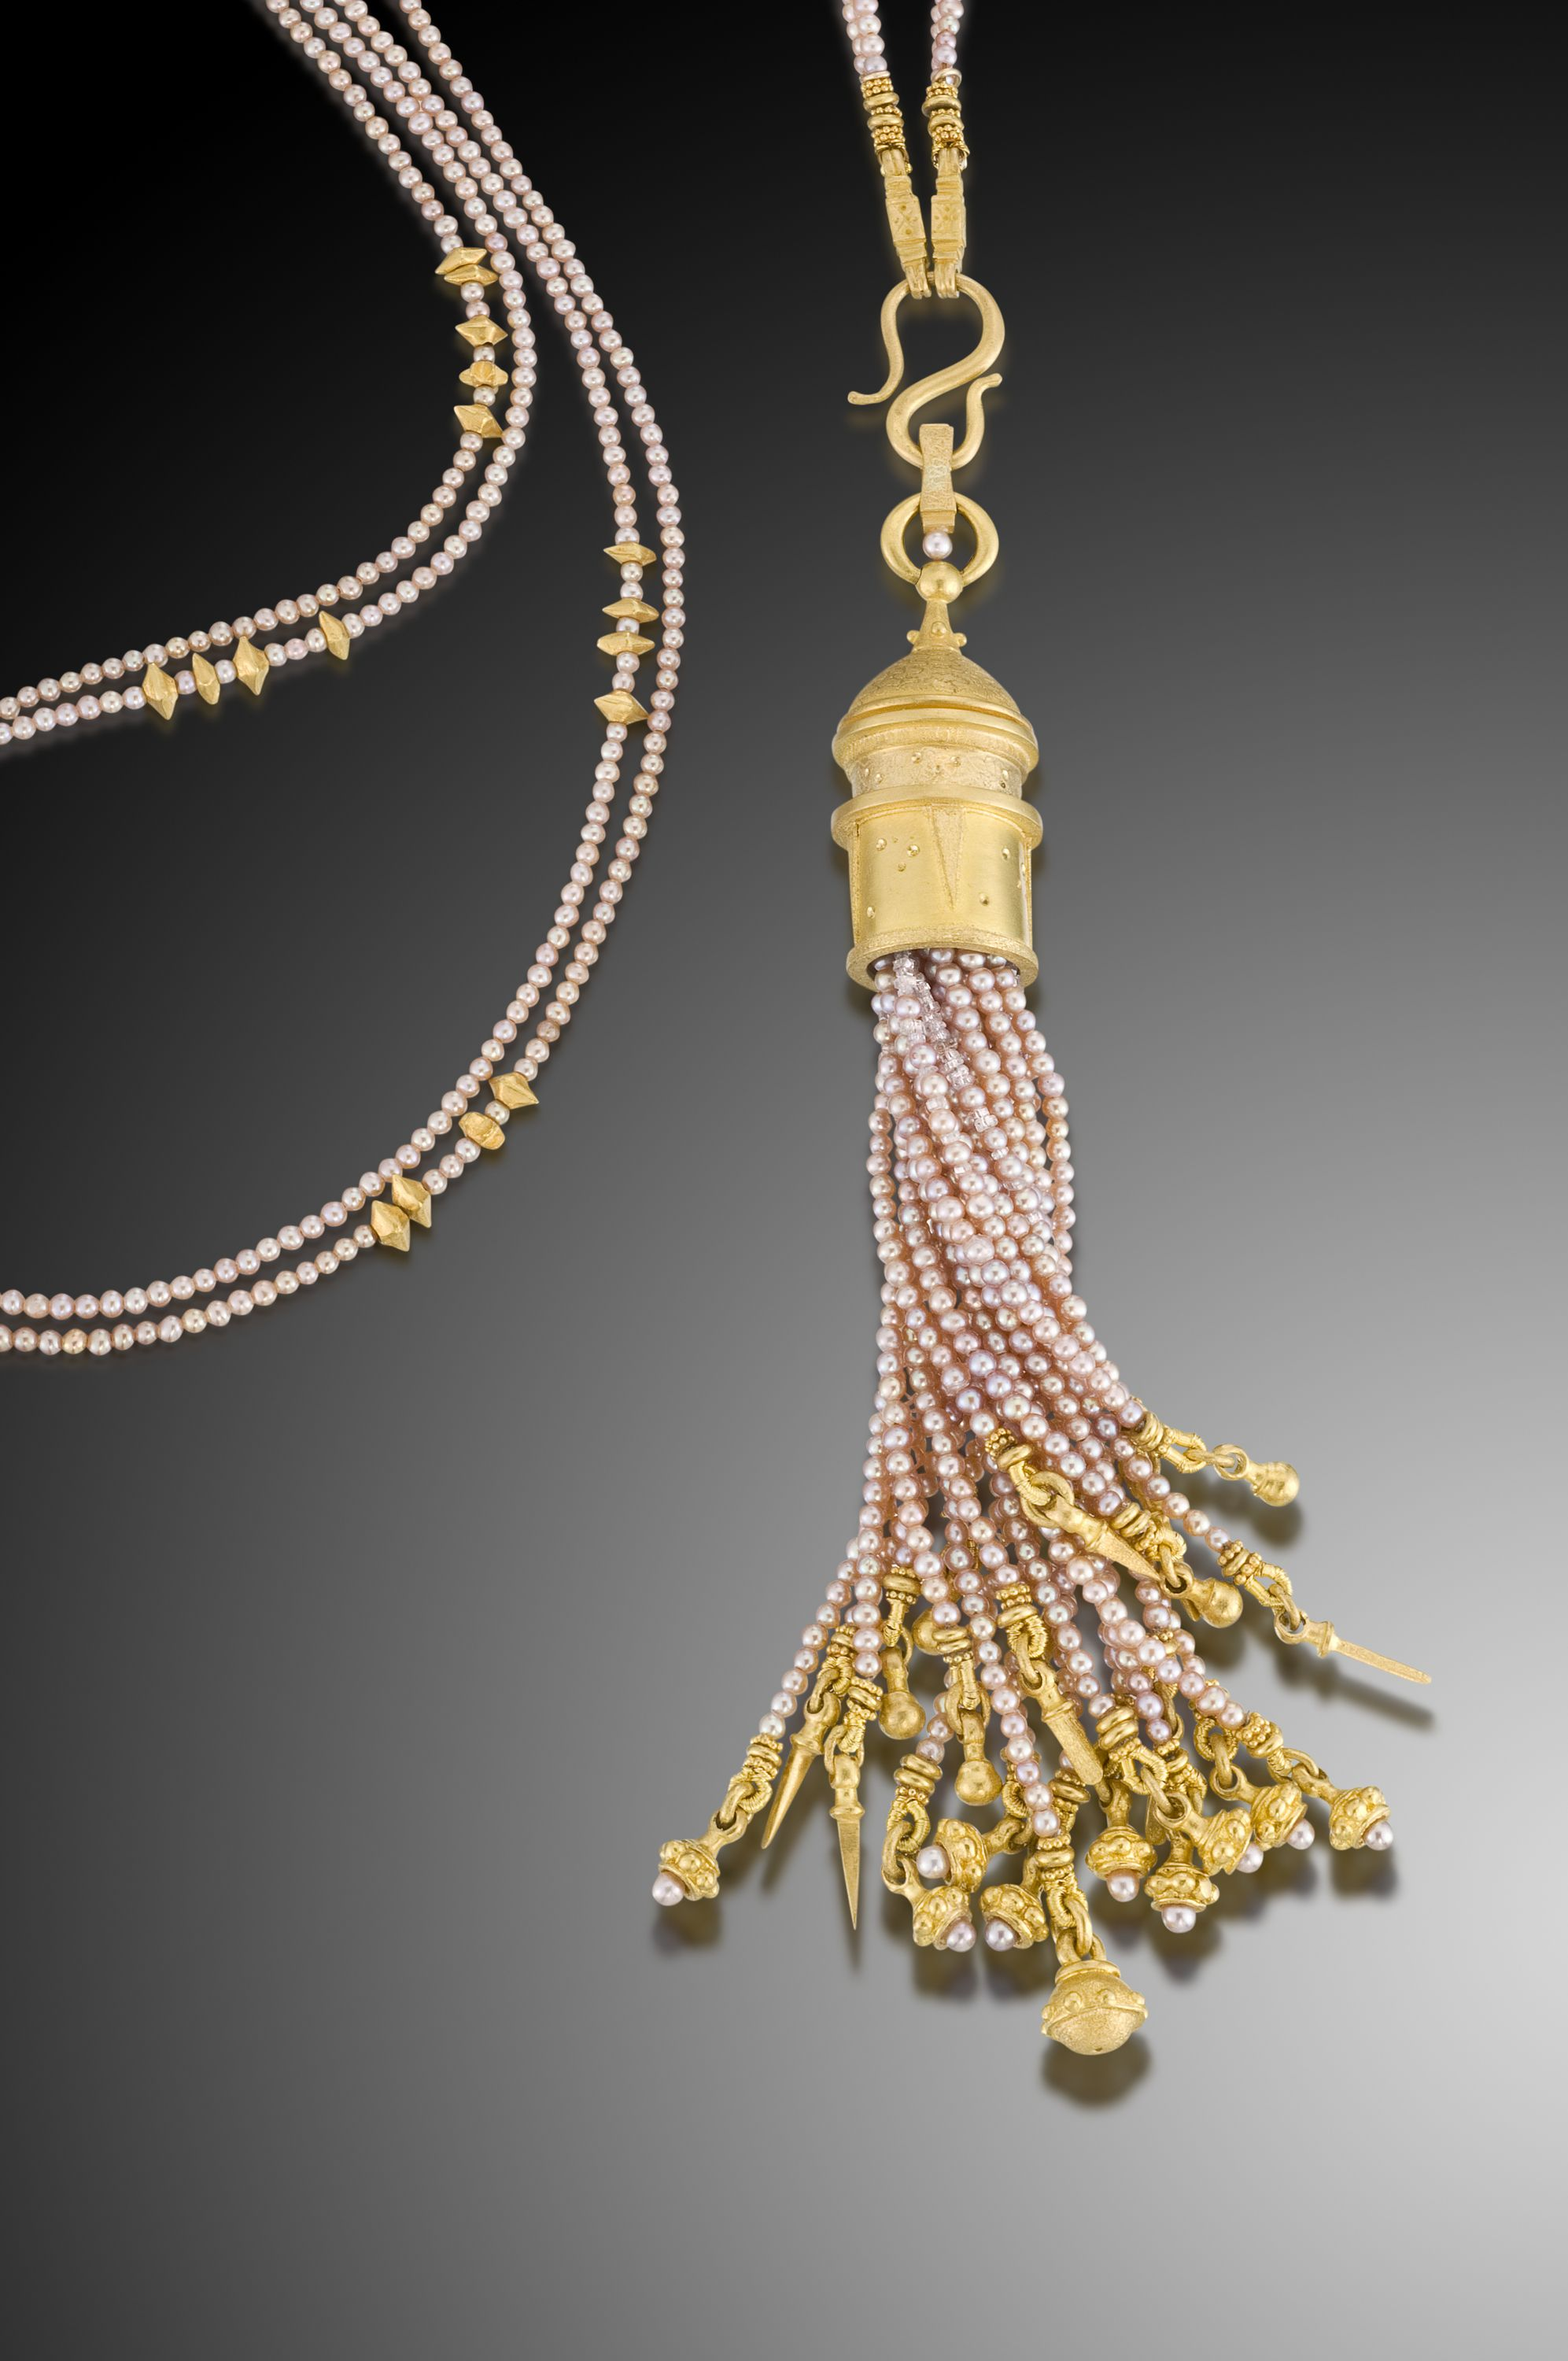 Pearl and gold necklace with a pearl and gold tassel pendant by